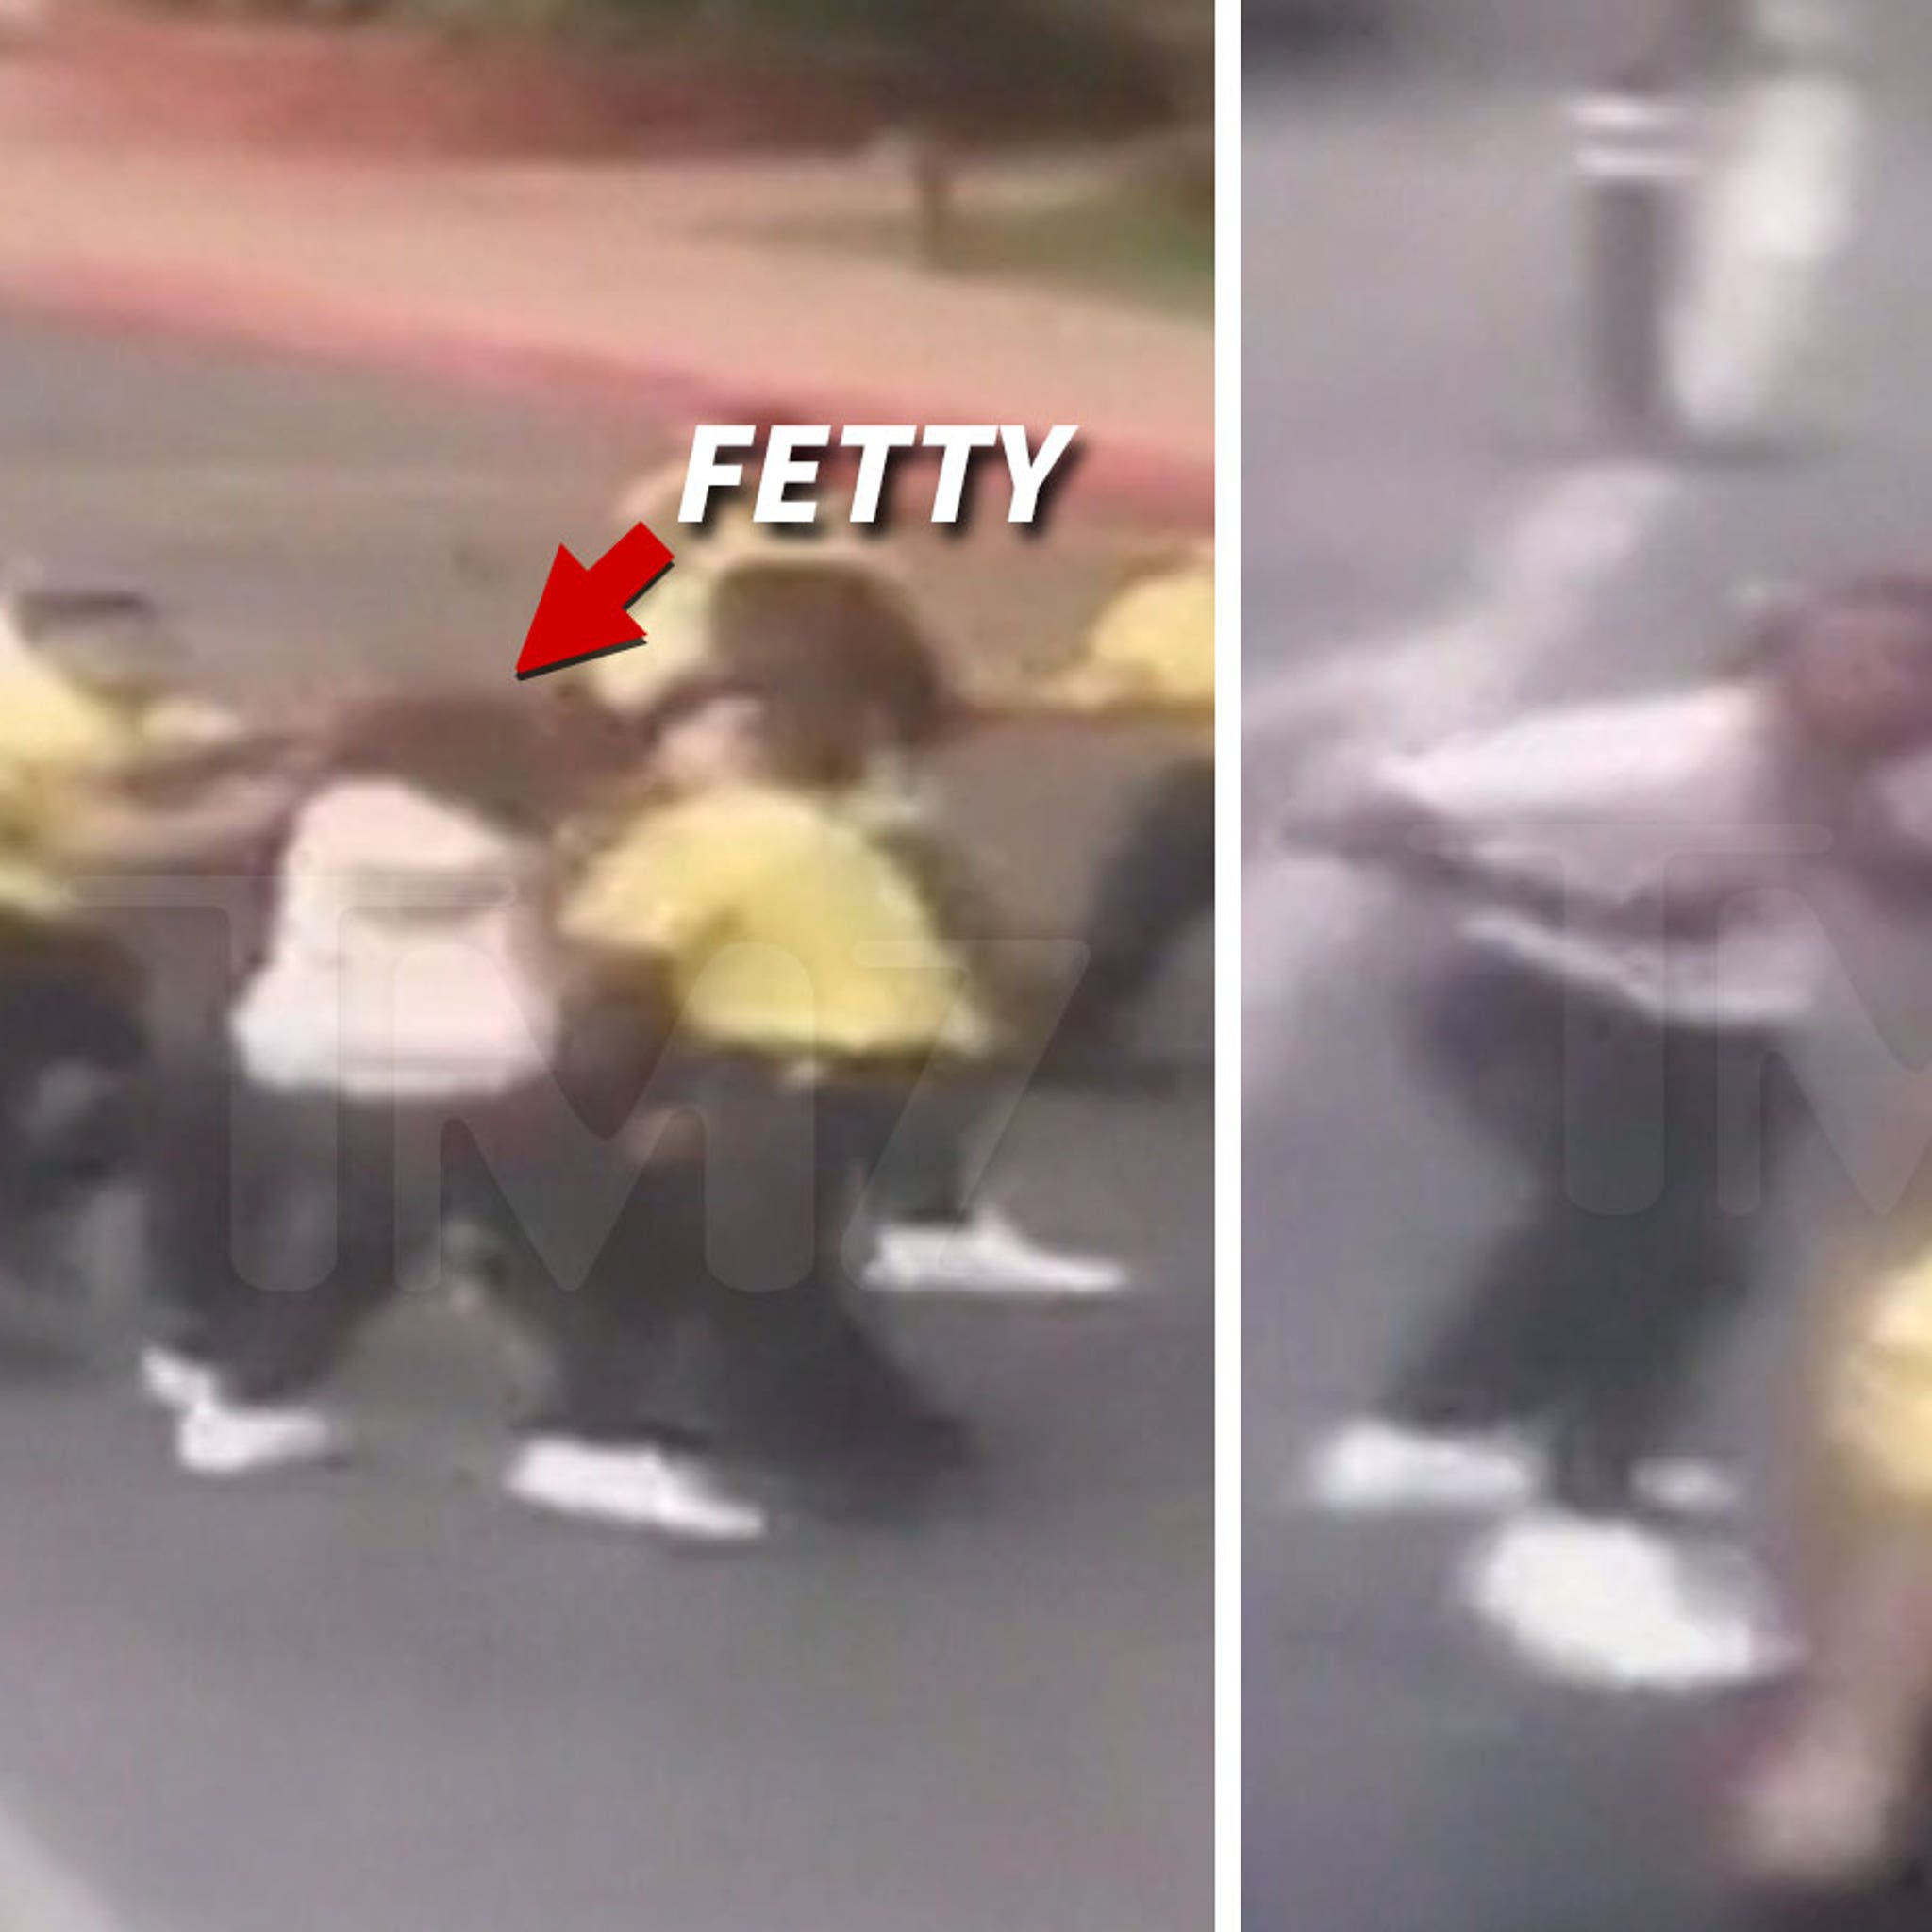 Fetty Wap Charged With Battery, Video Shows Him Punching Security